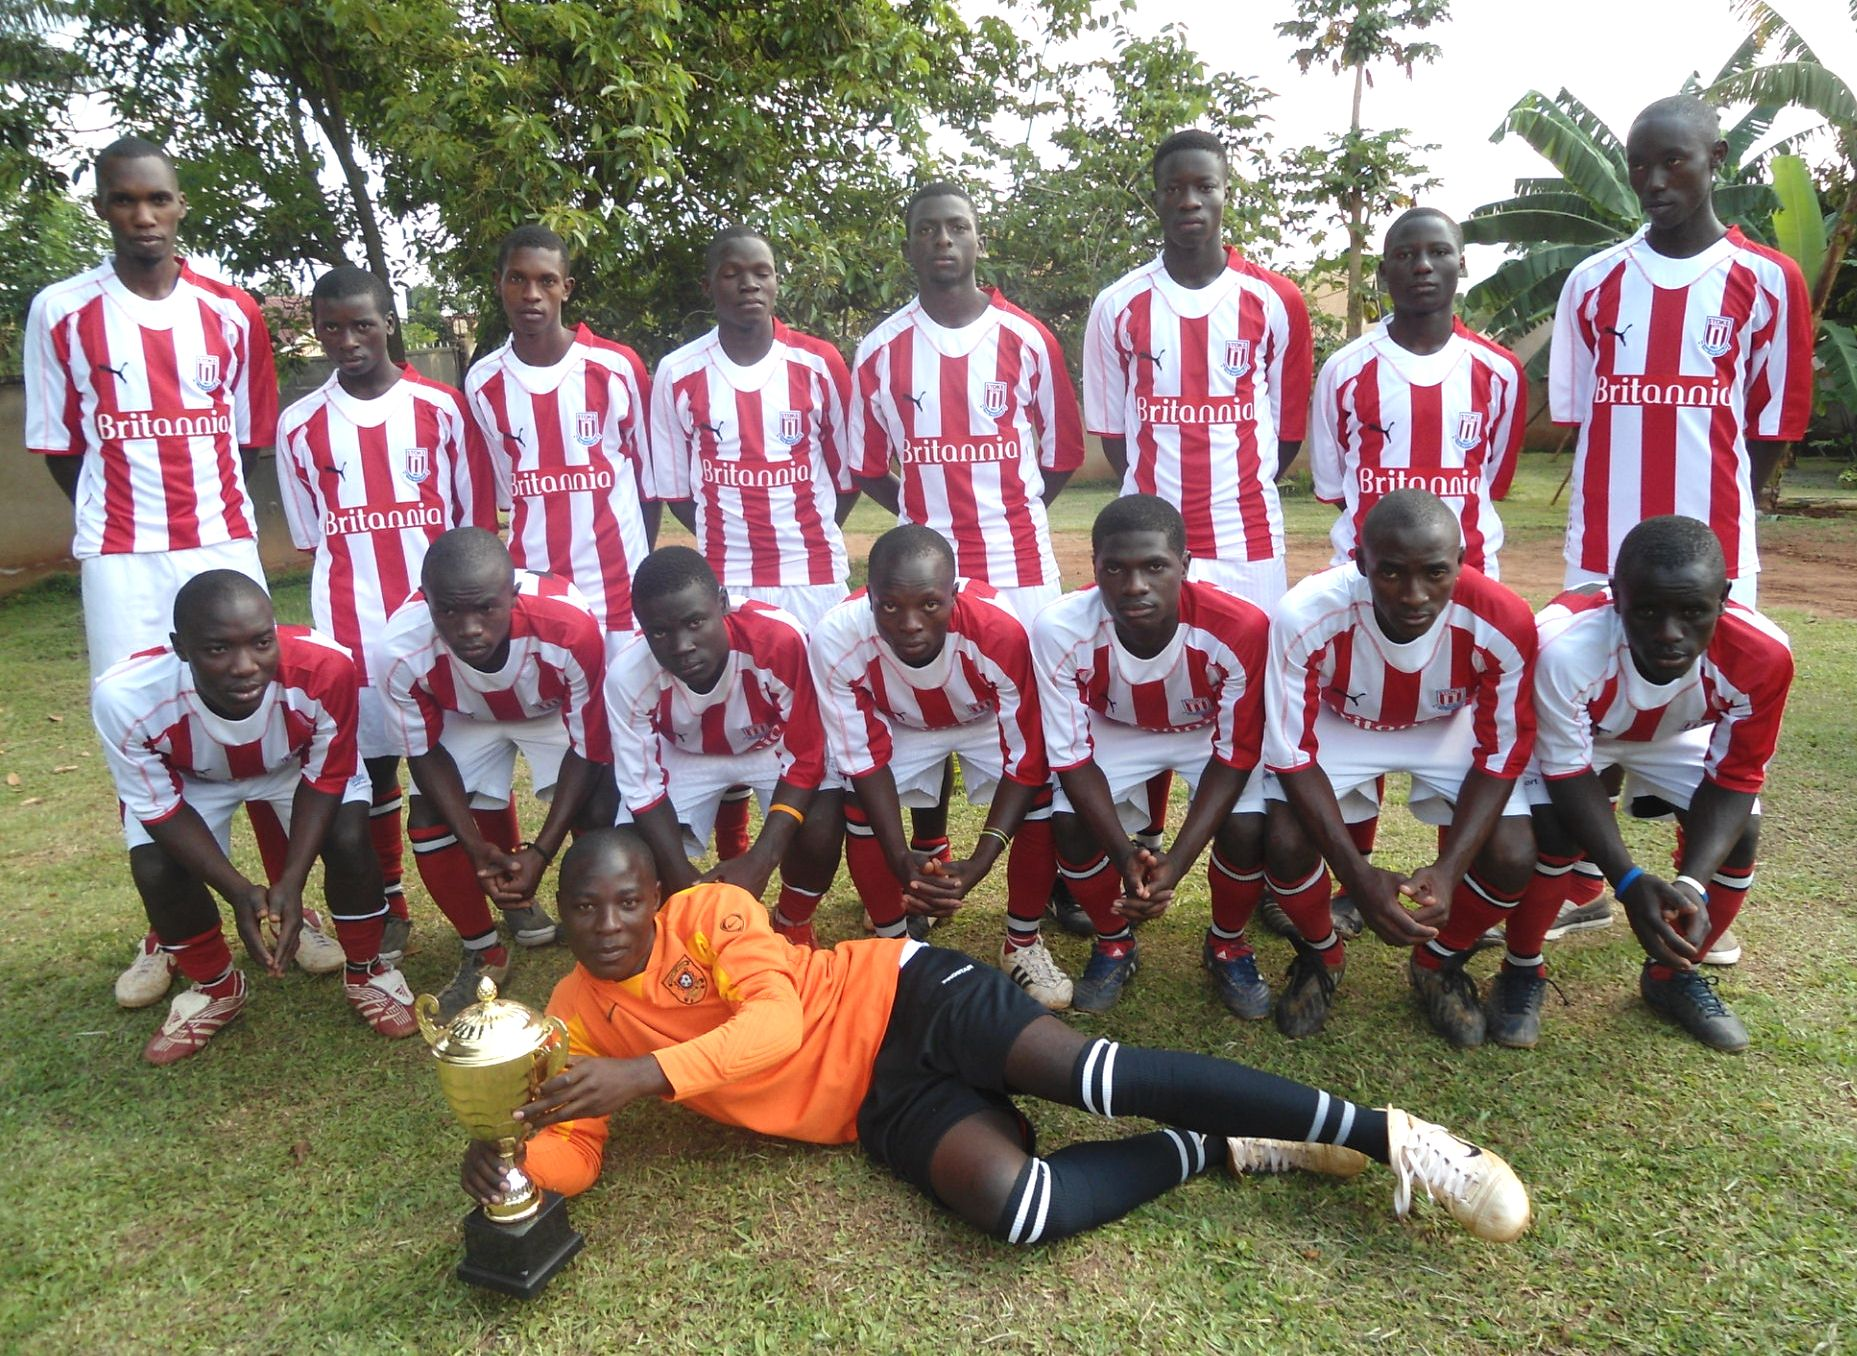 Stoke City shirts finding a good use in Uganda